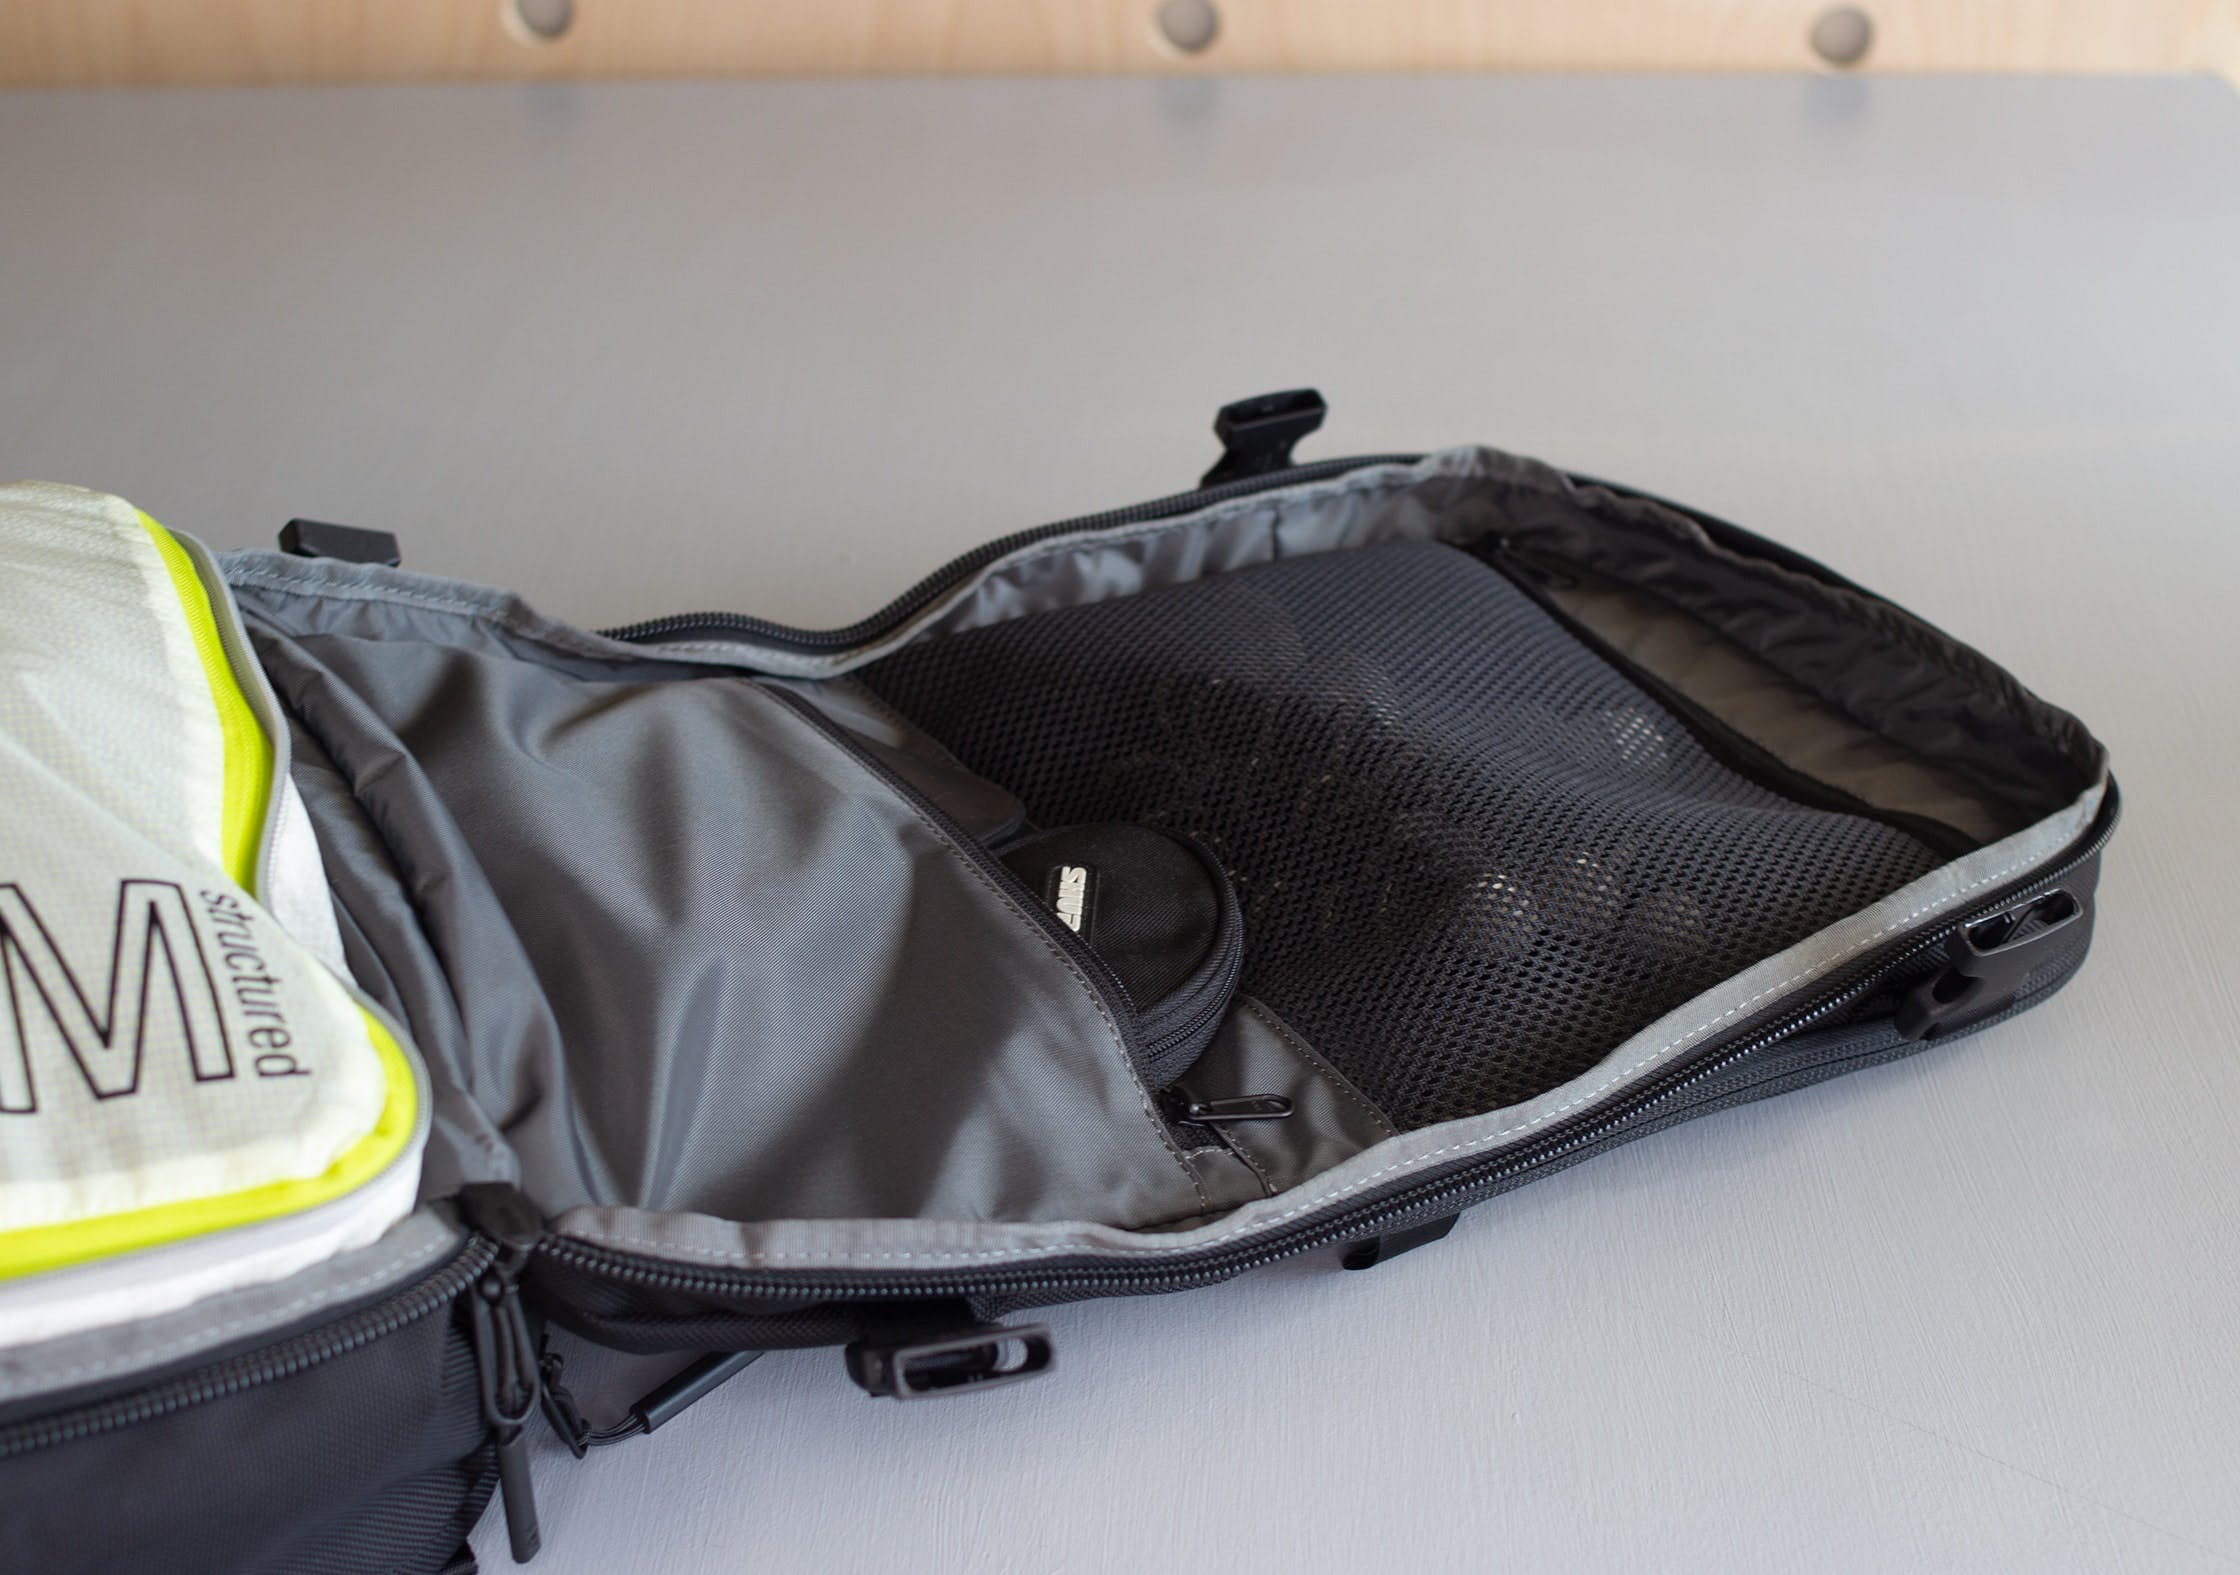 Aer Travel Pack 2 Interior Pockets